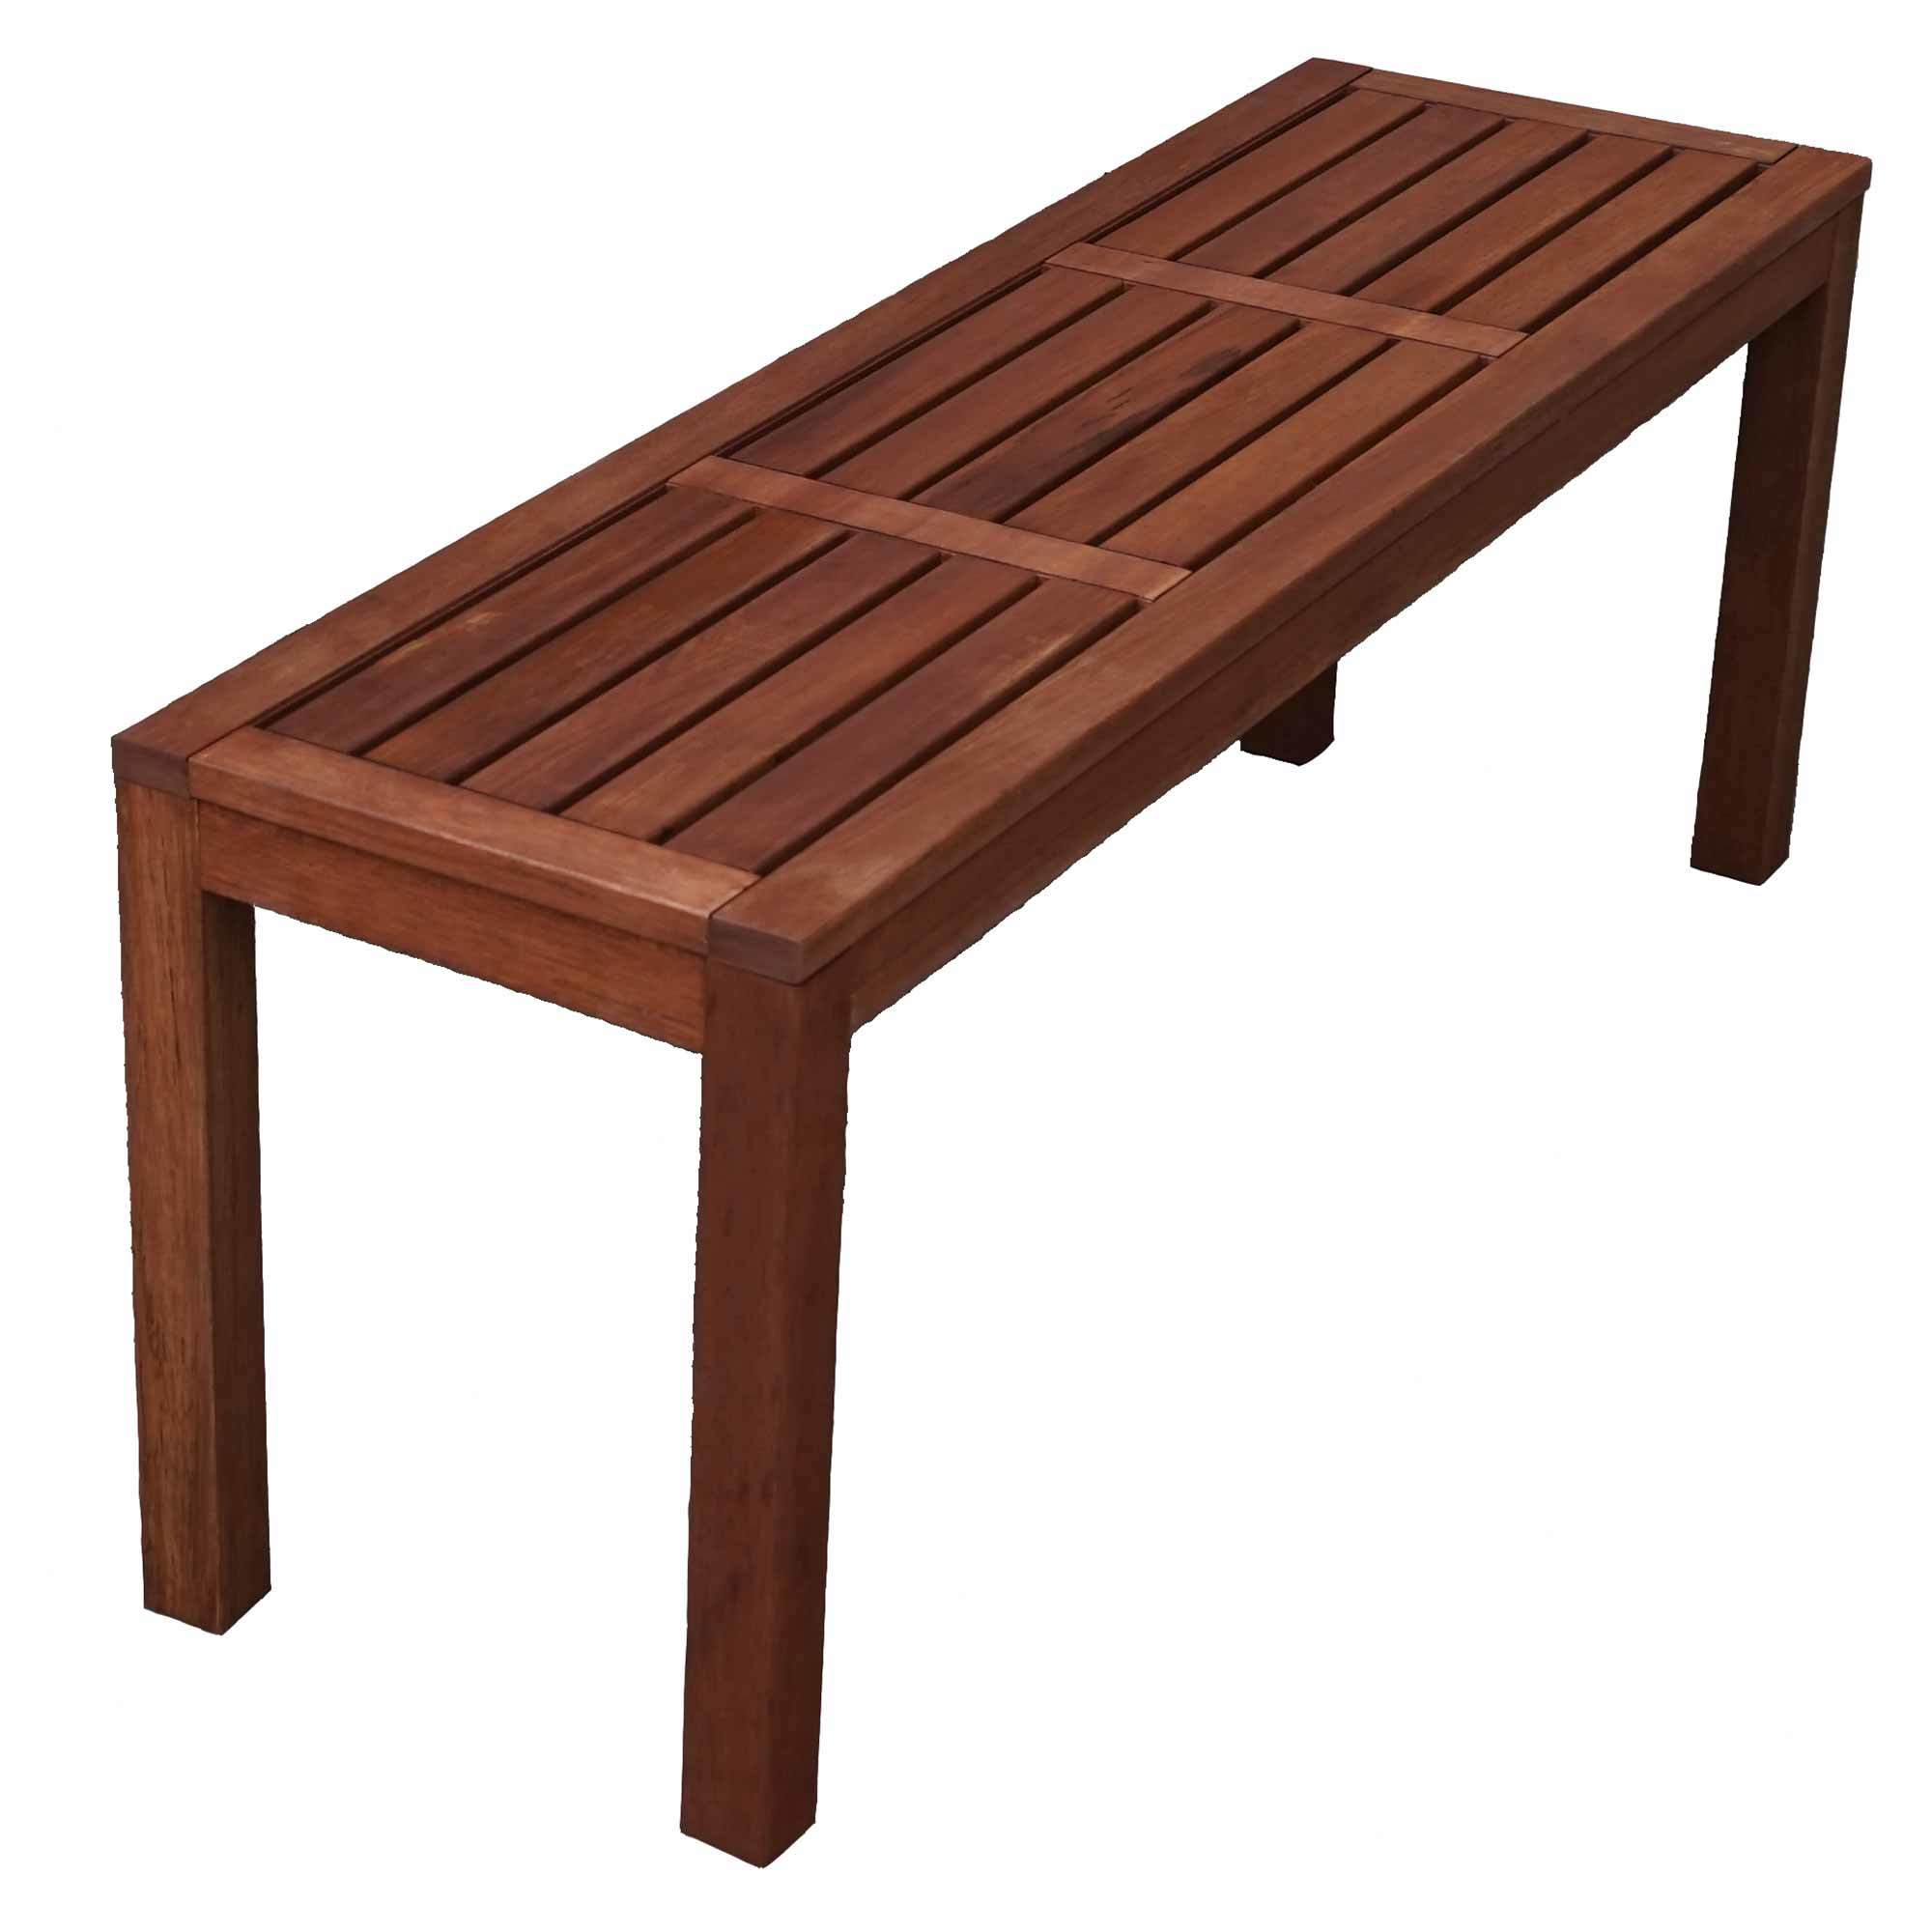 Woodlands Outdoor Furniture Backless Outdoor Wooden Bench Reviews Temple Webster